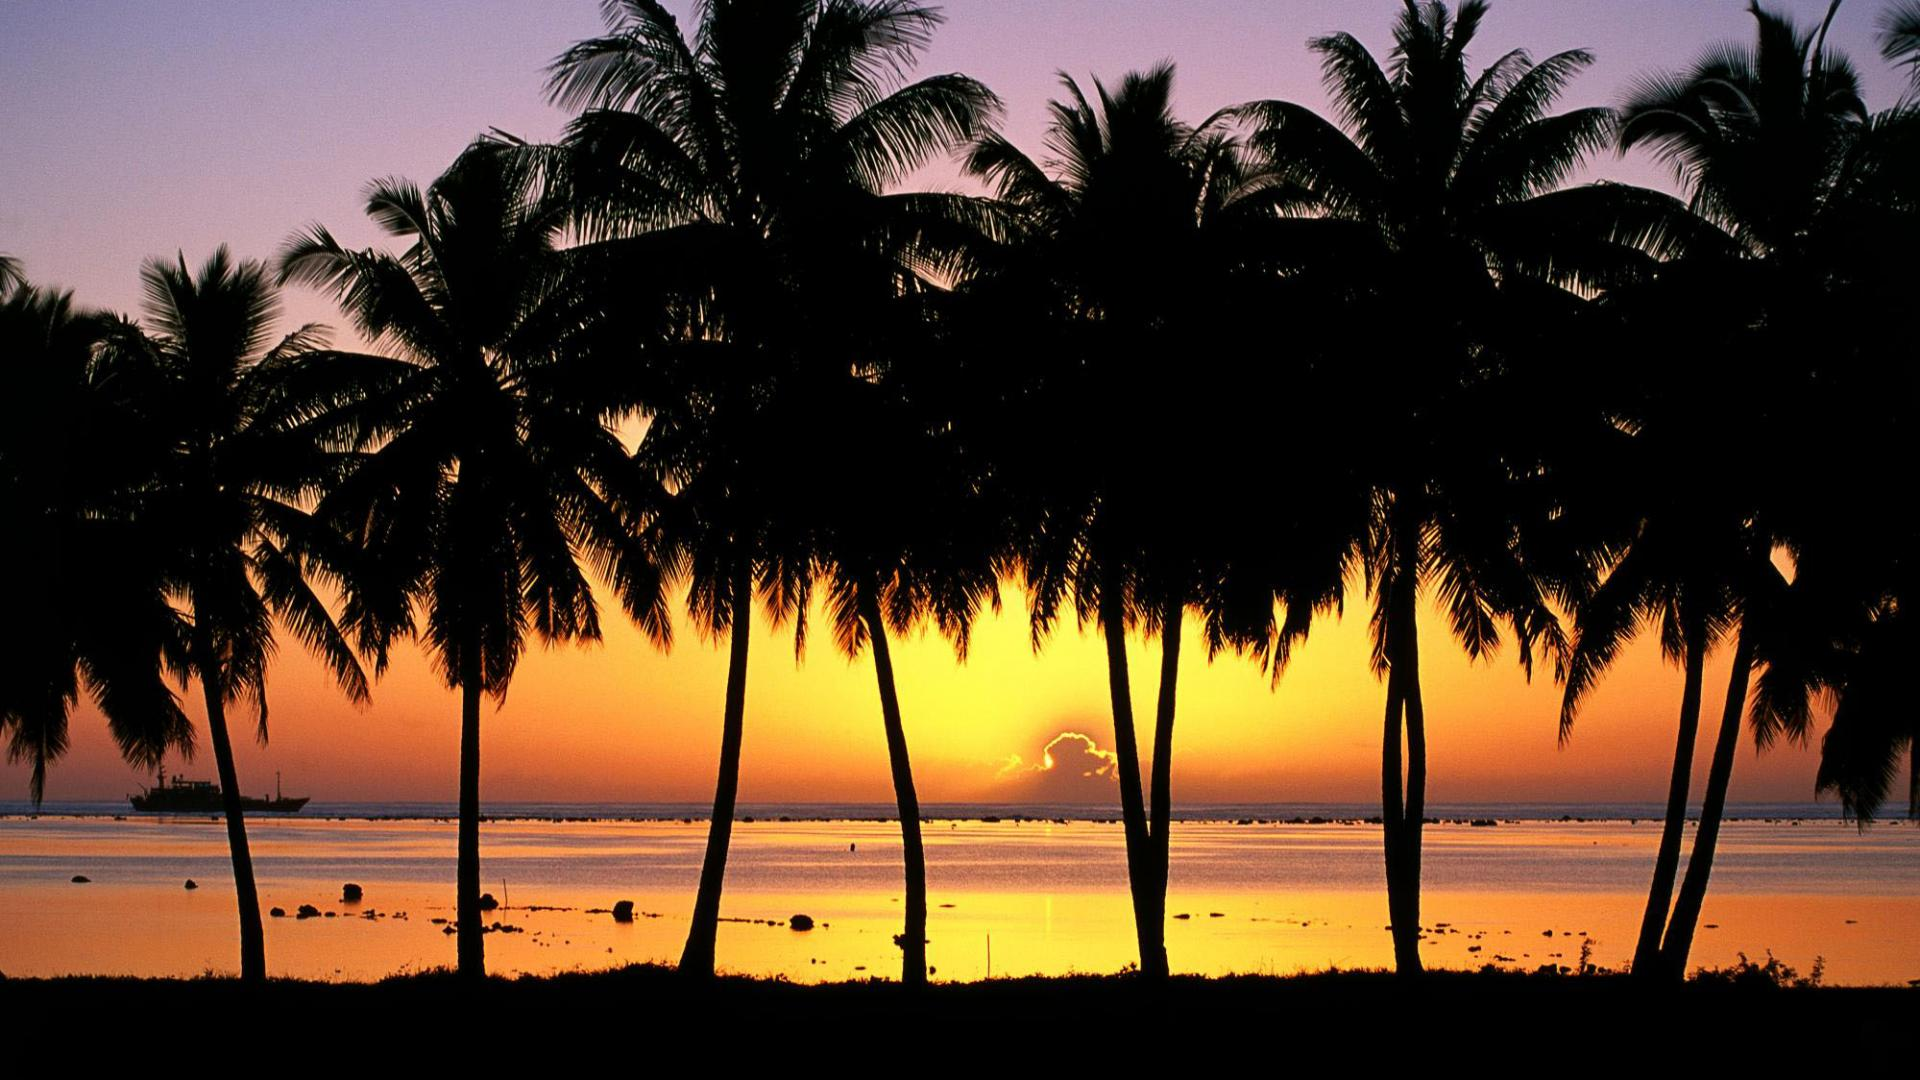 Download Wallpaper Palm Trees at Sunset Cook Islands 1920 x 1080 1920x1080